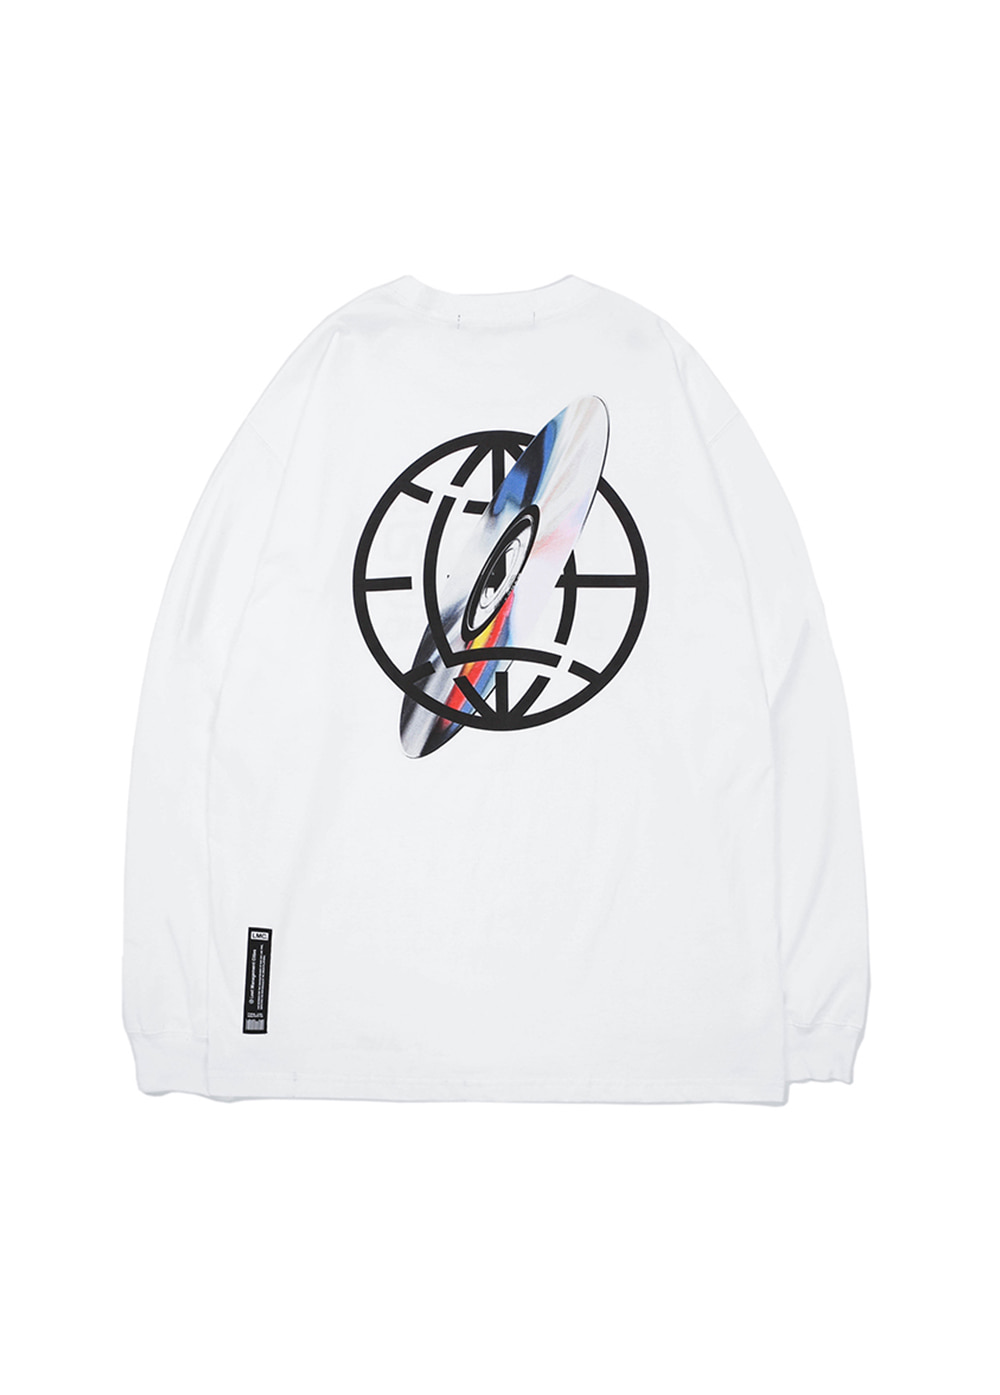 LMC CD LSV TEE white